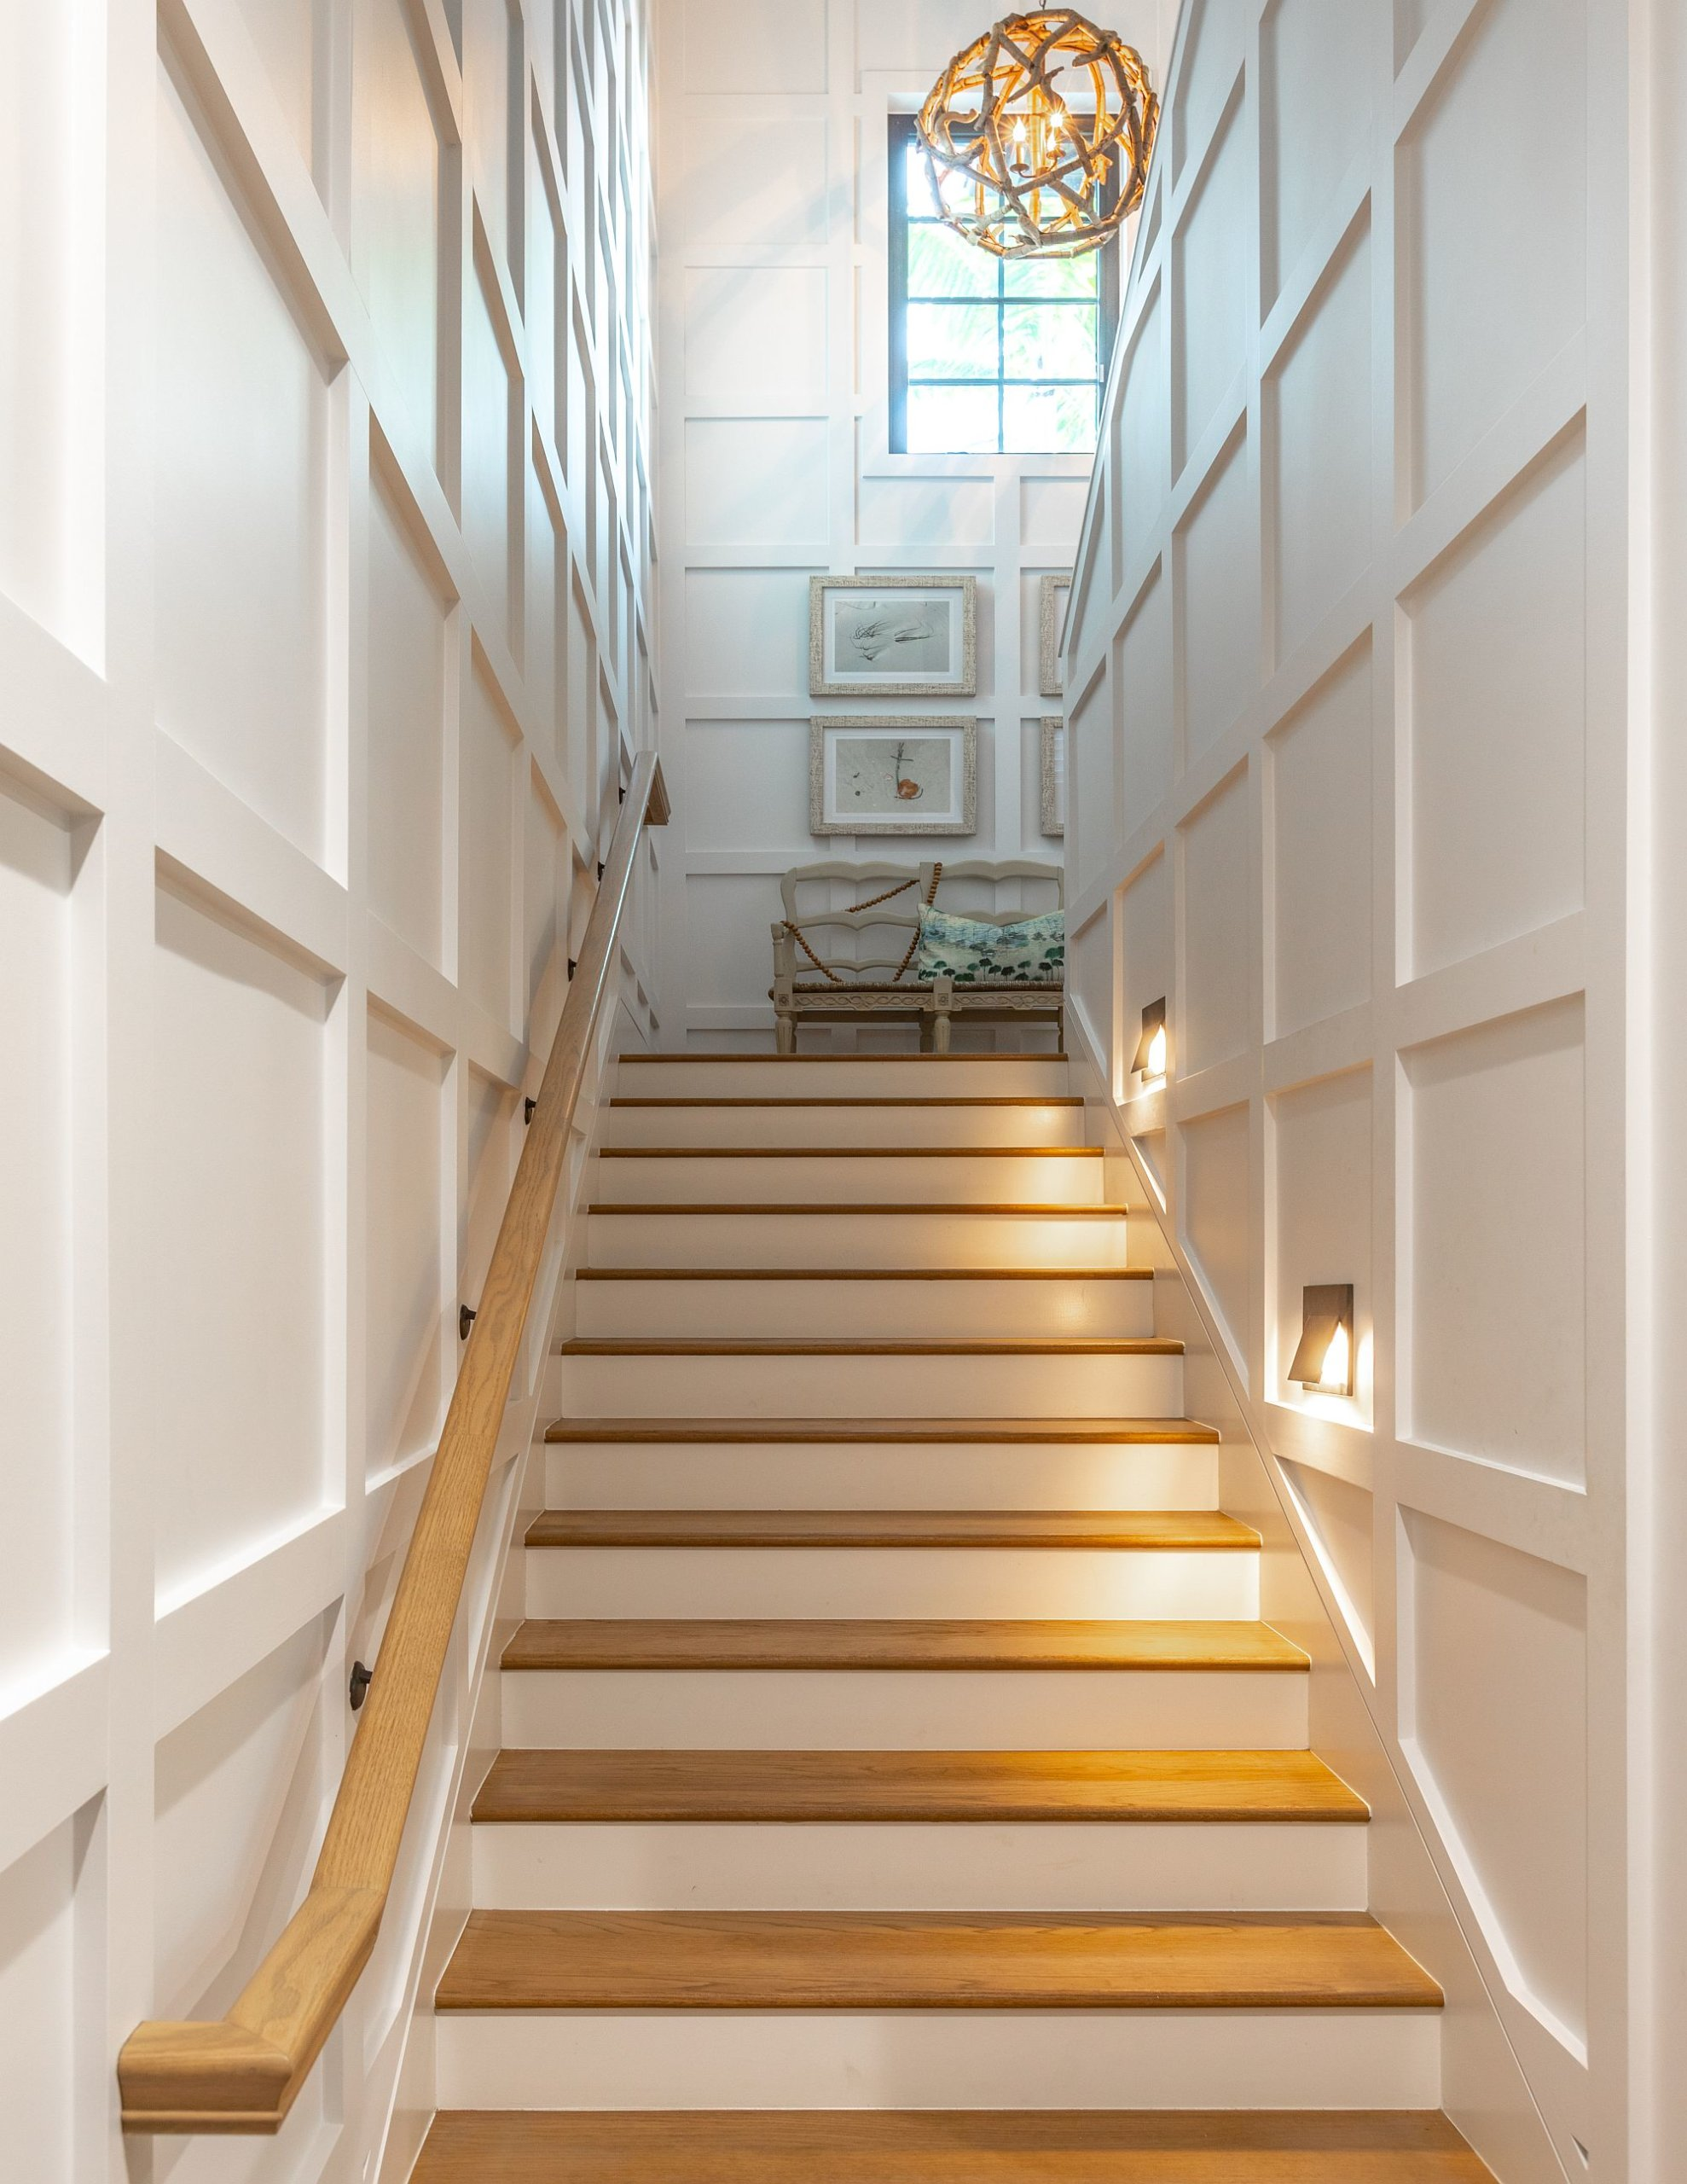 Find the right lighting to illuminate the grand staircase